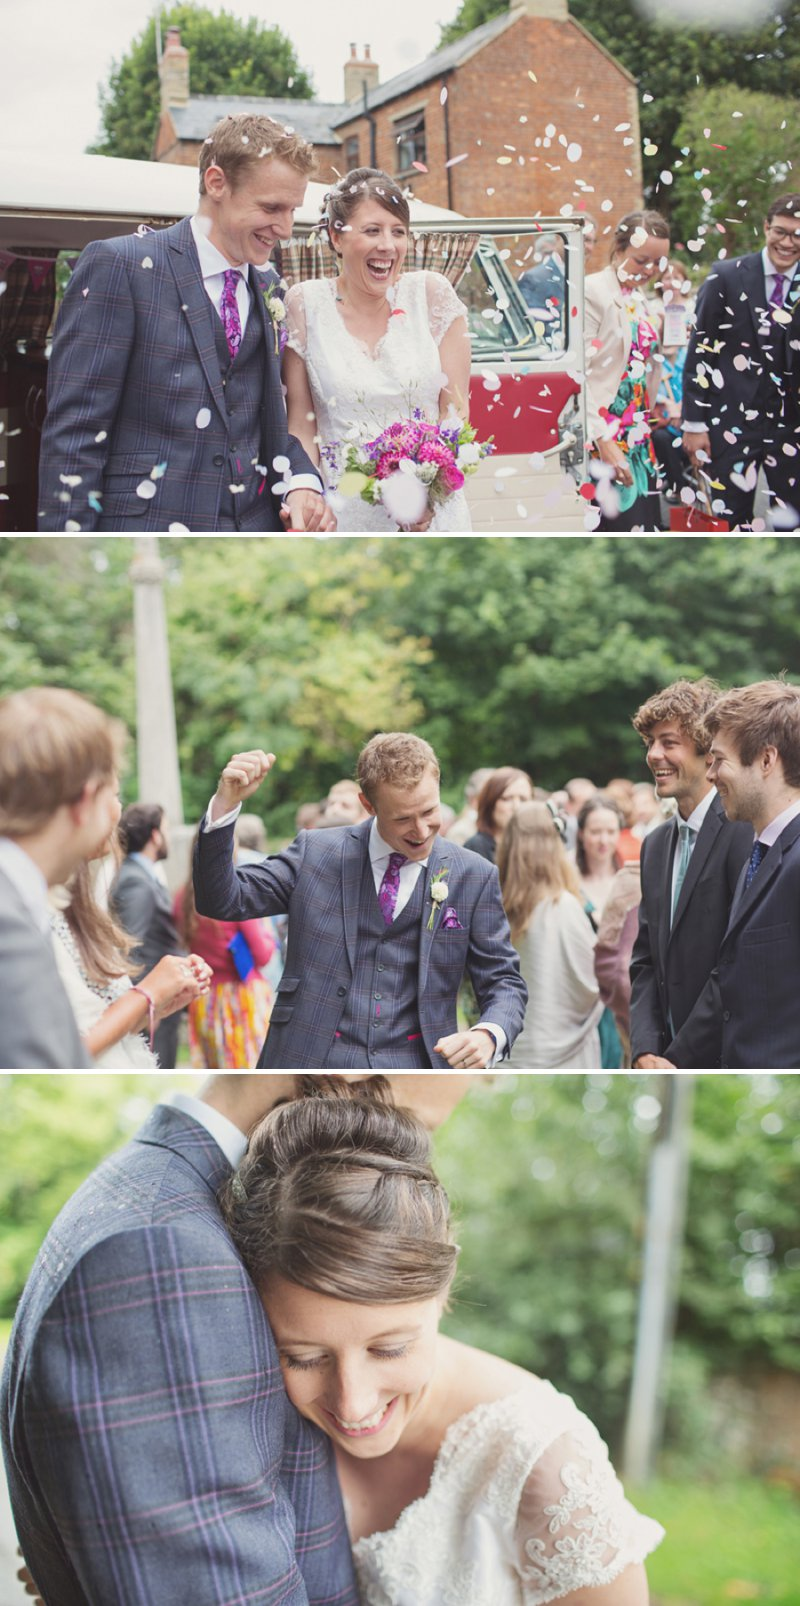 A Rustic Wedding At The Crown Inn Pishill With Bride In Bespoke Lace Gown And Groom In Tweed Suit From Clements And Church With Bunting And An Vintage VW Campervan Images From Cotton Candy Wedding Photography 4